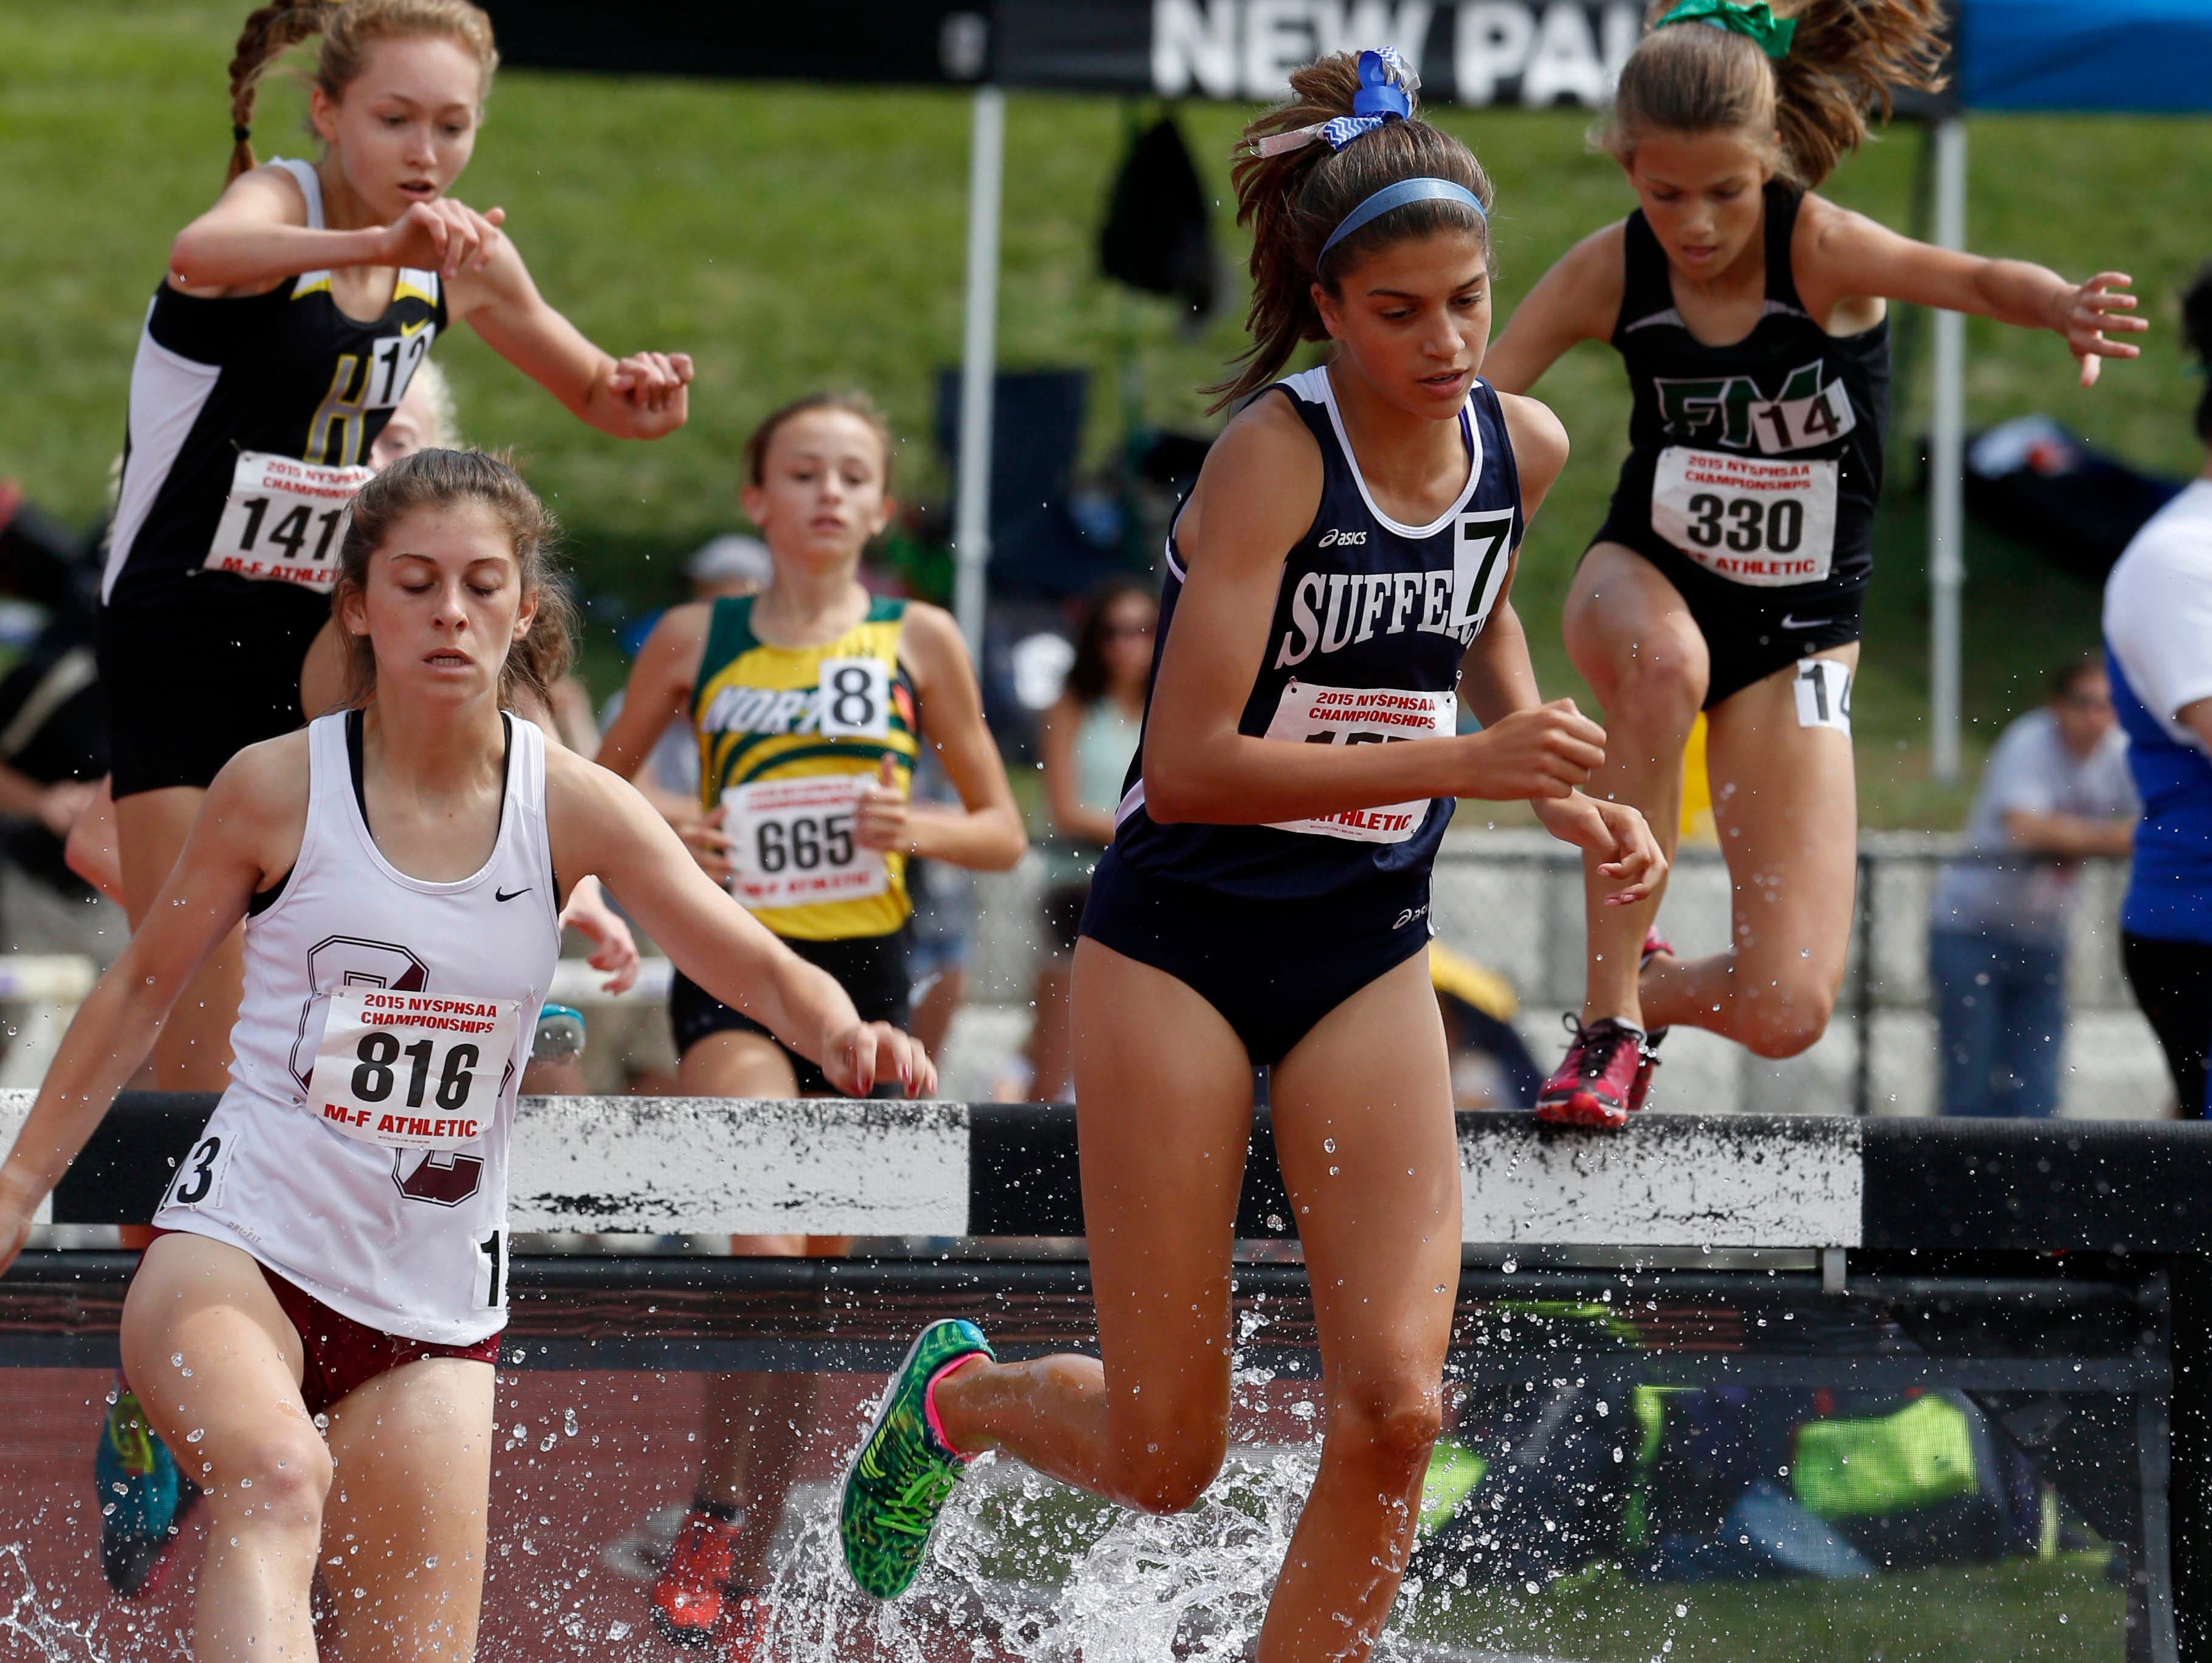 Suffern's Rachel Ludwikowski, pictured here competing in the girls 2000 meter steeplechase at the state track and field championships at the University at Albany, June 13, 2015, won the Girls A race at the Suffern Invitational on Saturday.